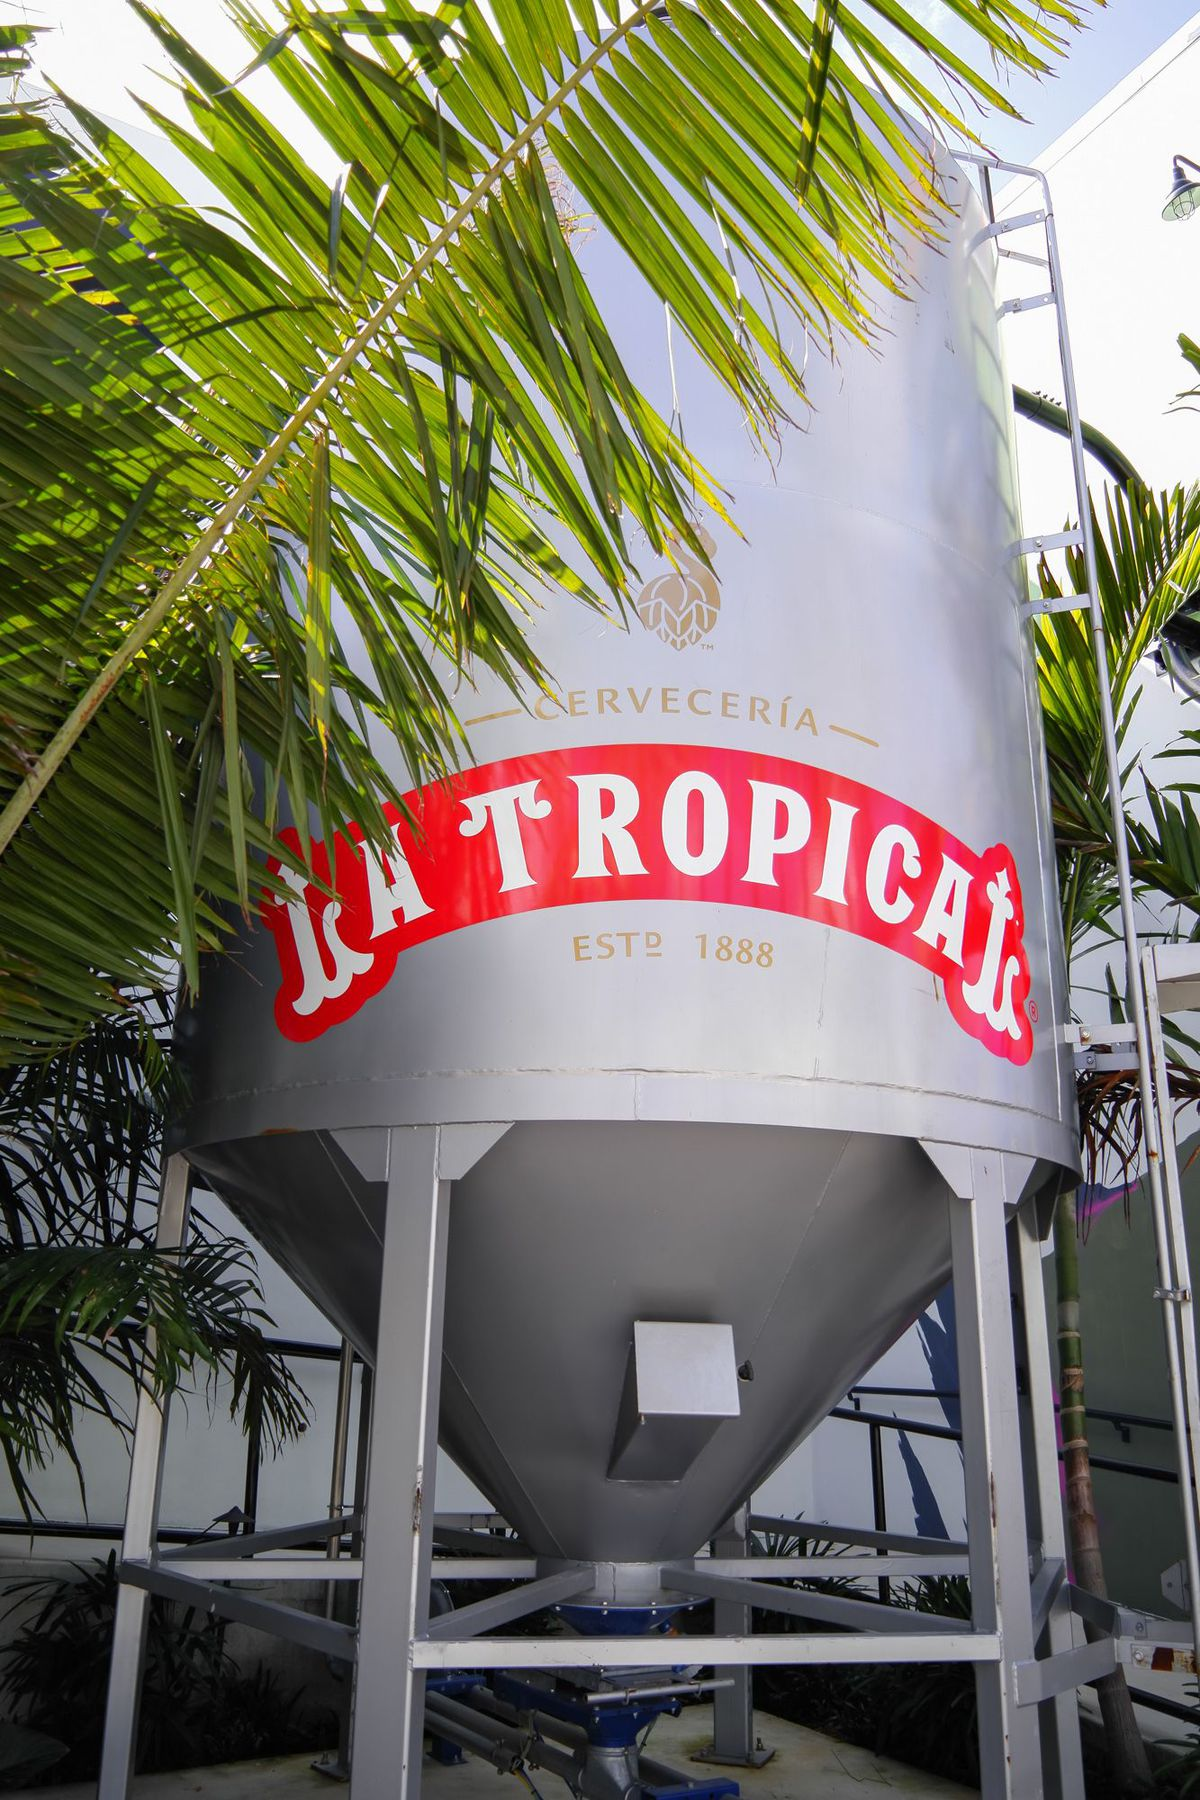 Brewing area with La Tropical signage on it